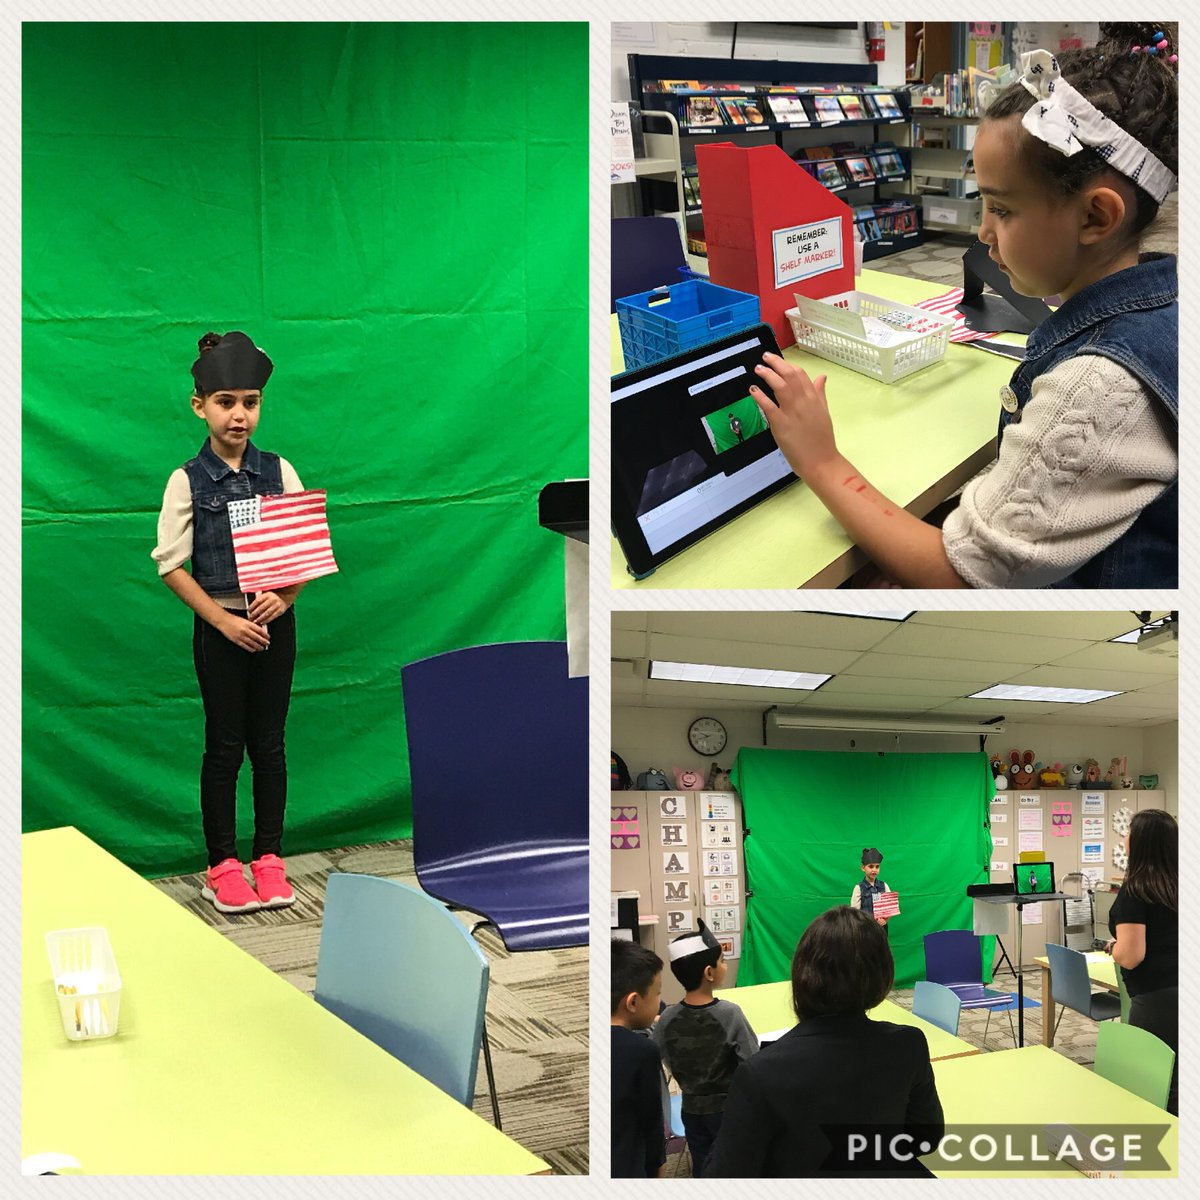 test Twitter Media - RT @WescottLMC: Filming students in @Wescott2S on green screen with @DoInkTweets app for their biography projects with @AnnaDavisTIS #d30learns https://t.co/Ddj7nTTdQO #doink #greenscreen